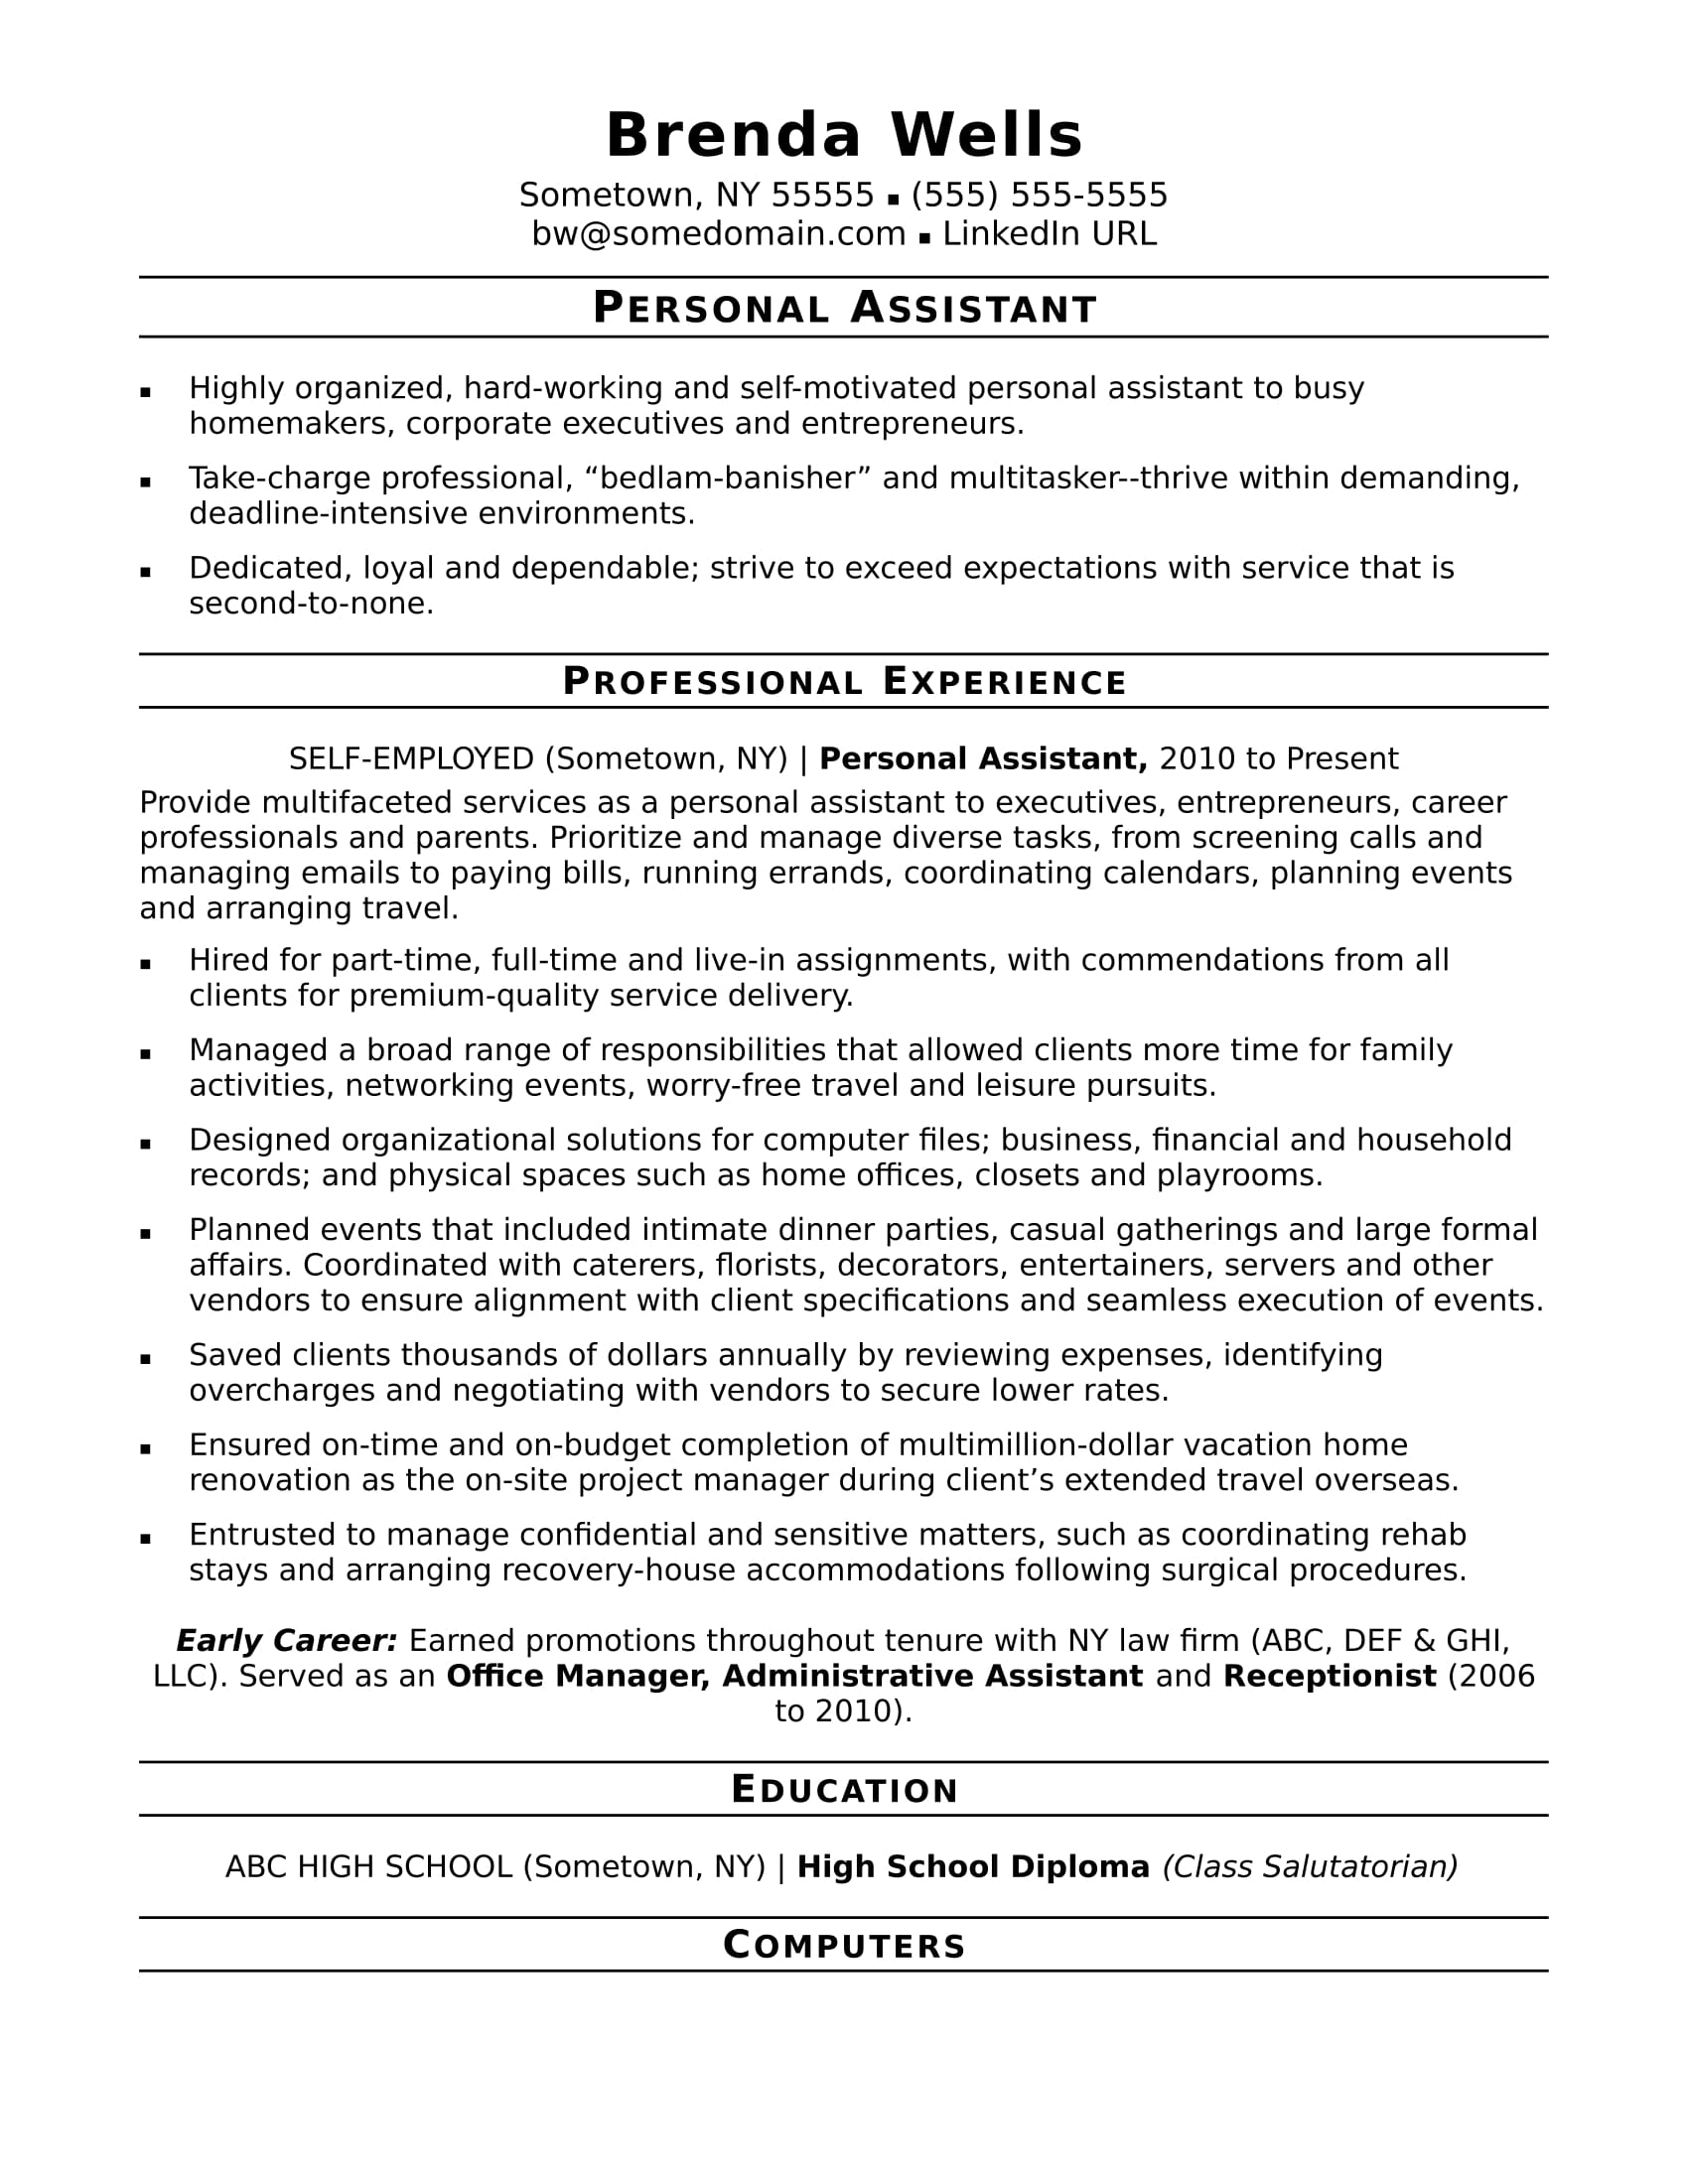 Personal Assistant Resume Sample